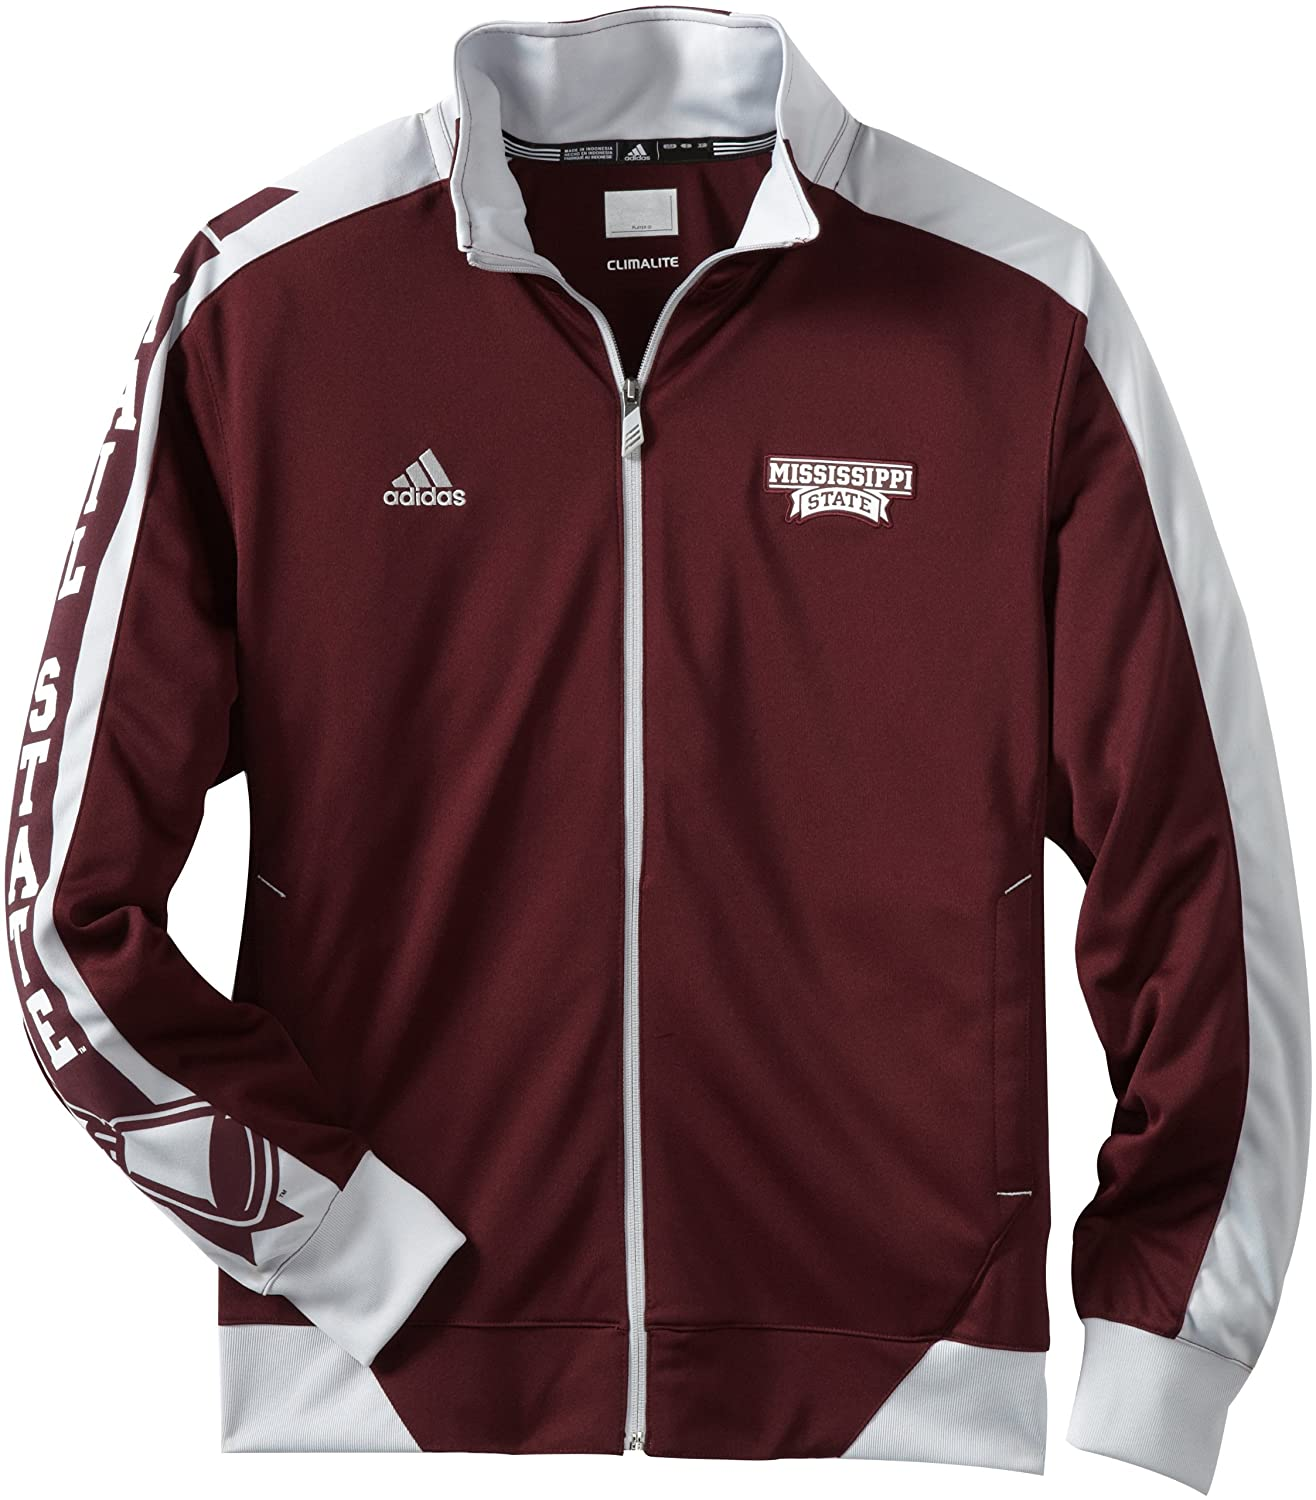 mississippi state men Browse mississippi state bulldogs fan gear, including hats, clothes and other great merchandise, all at academy sports + outdoors.